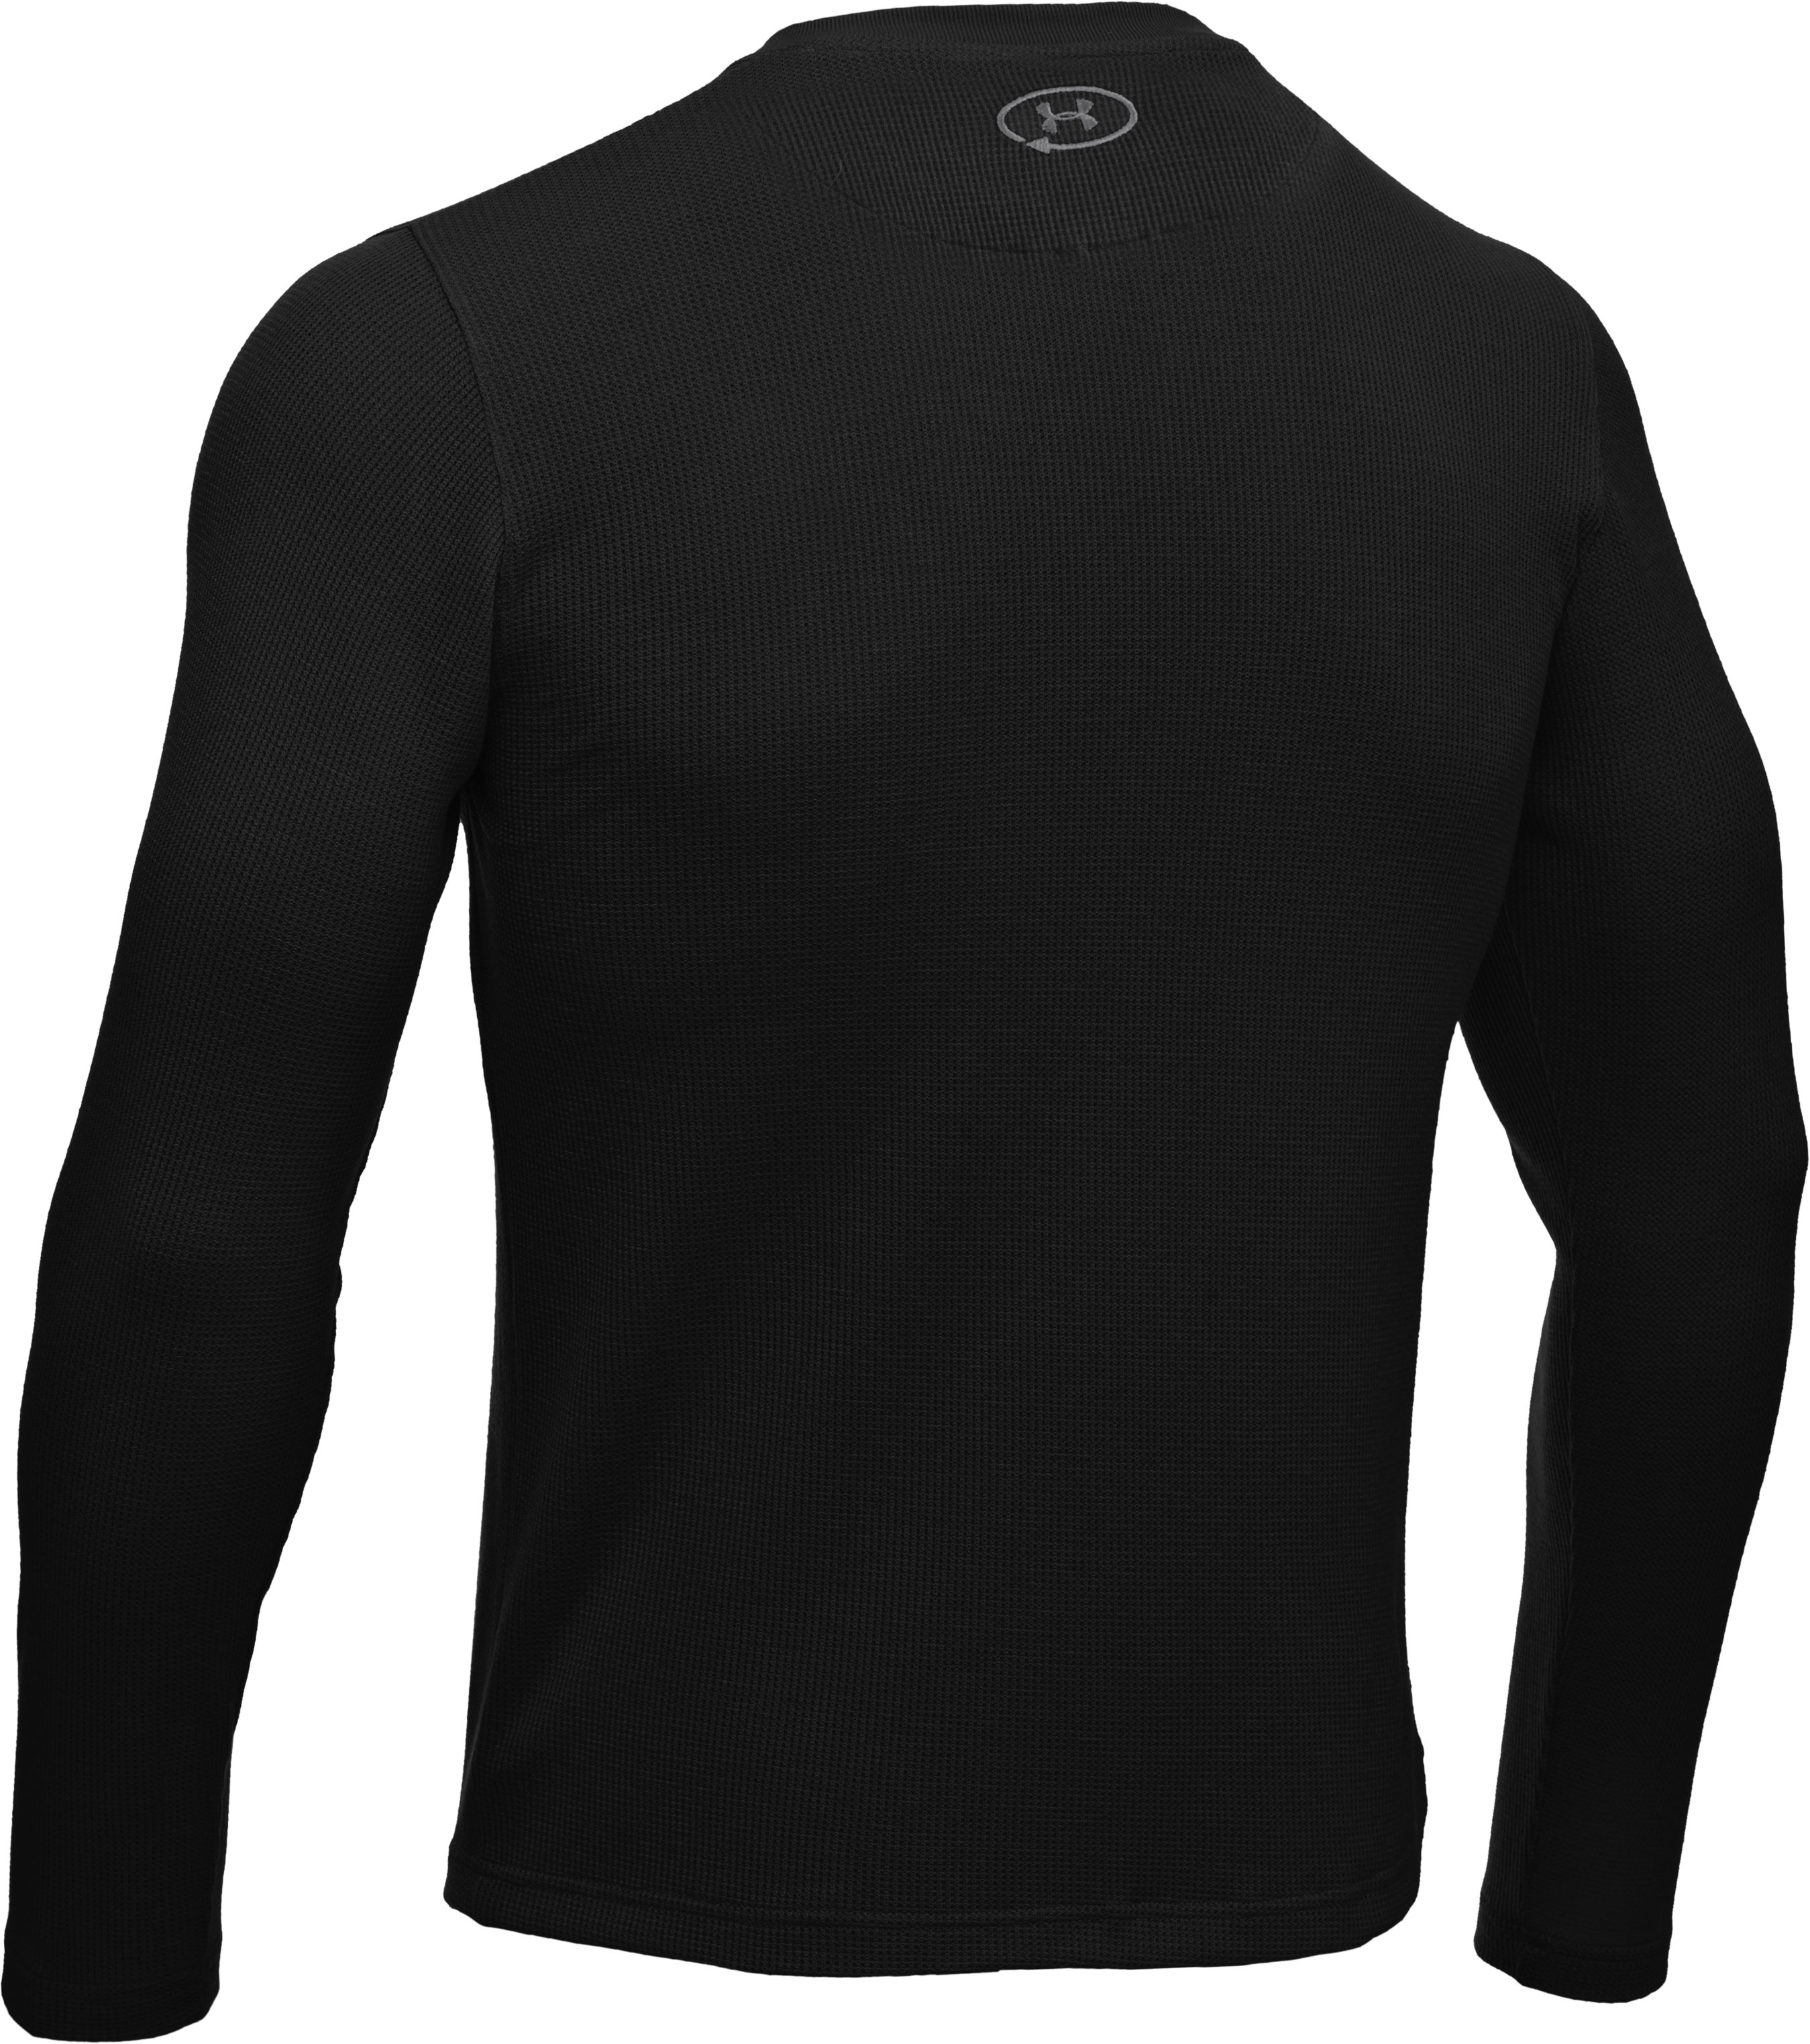 Men's Long Sleeve Waffle Crew, Black , undefined